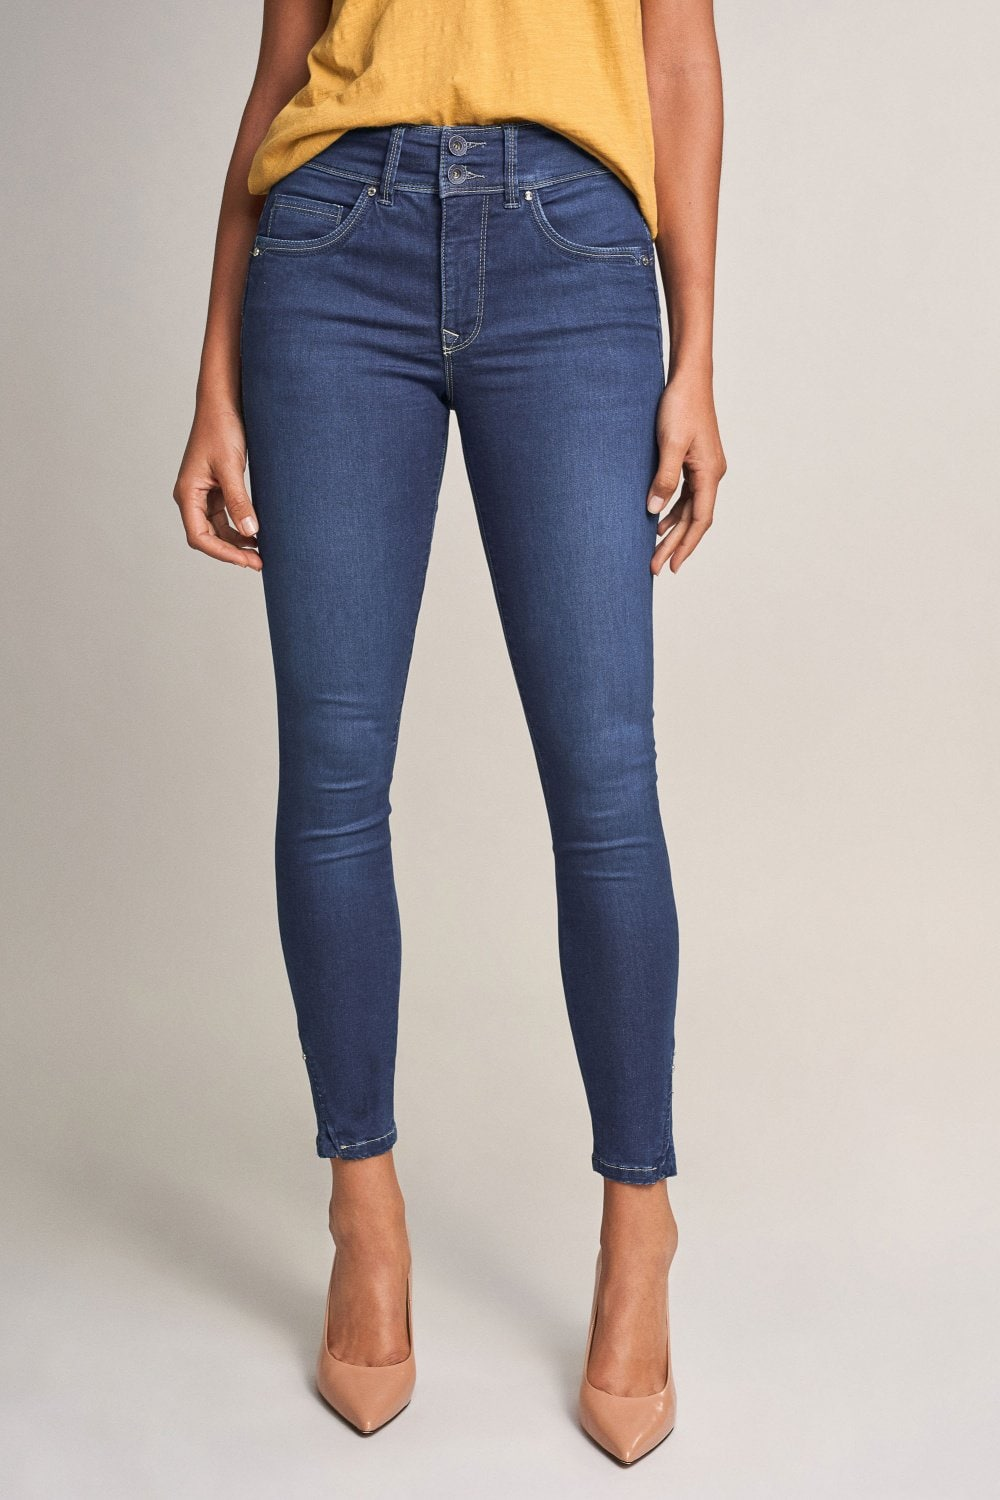 Jeans Push In Secret, Caprihose, mit Nieten - Salsa